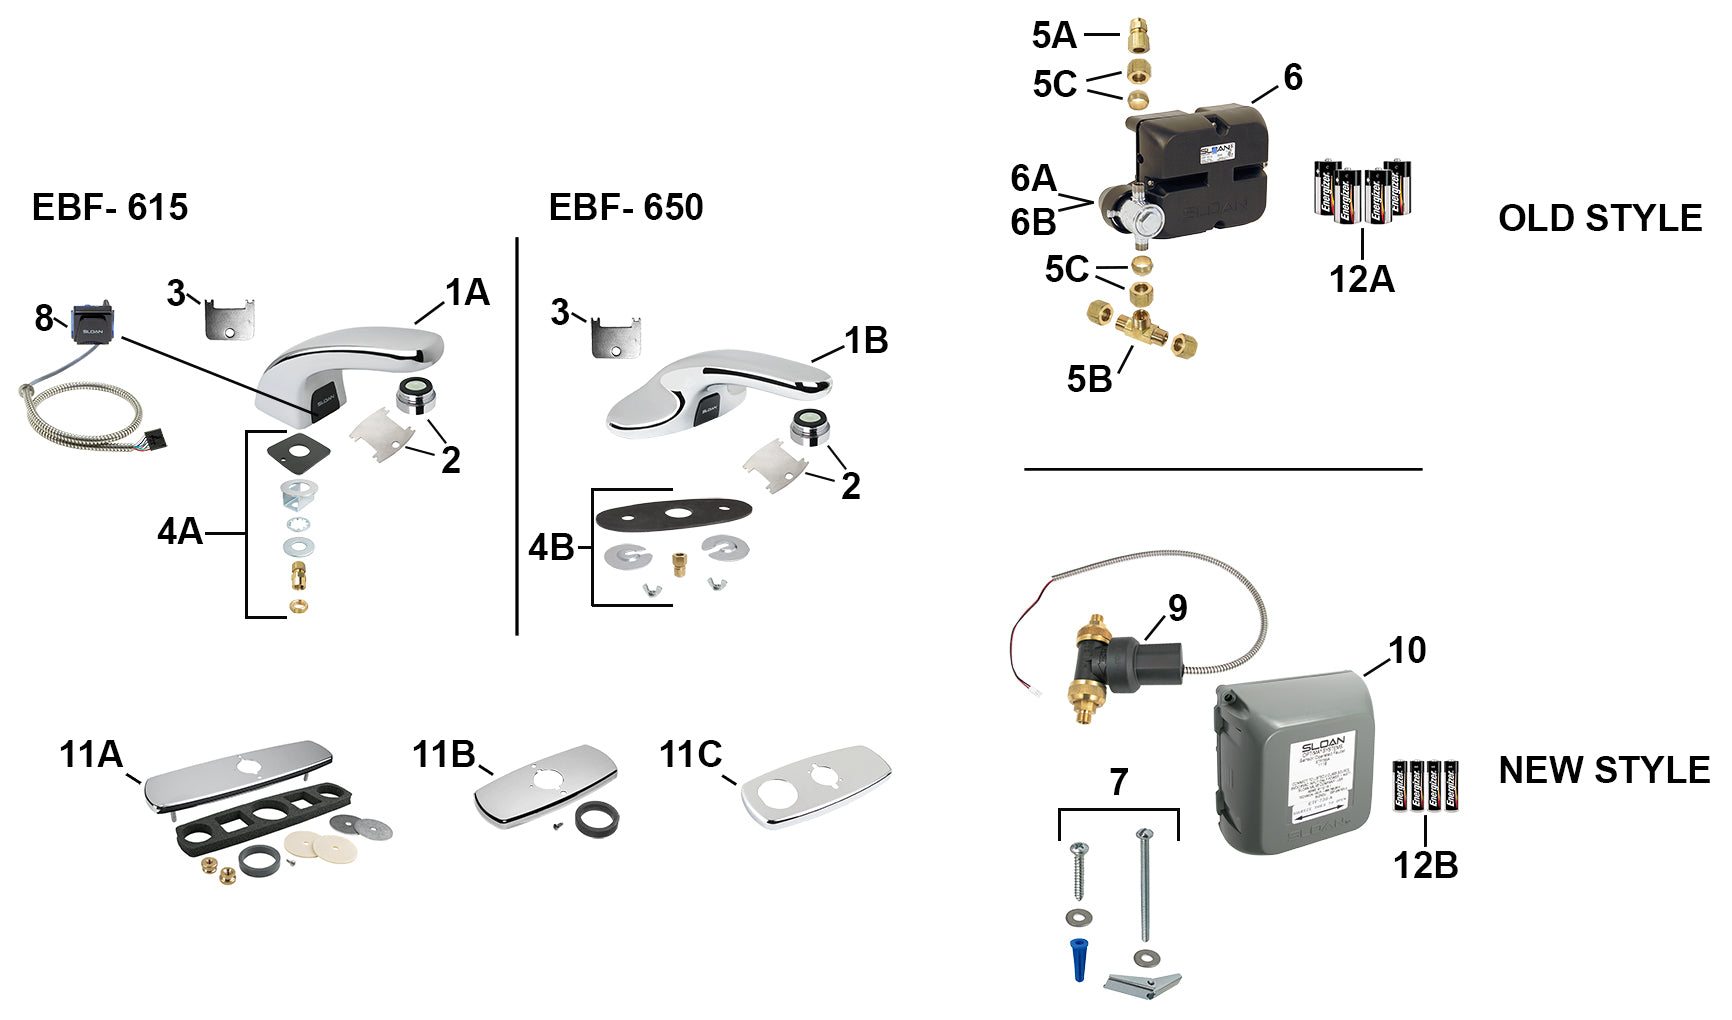 sloan ebf 650 \u0026 ebf 615 repair parts guide (with diagram) view andto order that part, give us a call ) when you scroll past the parts diagram you will see the troubleshooting q\u0026a, which lists the most common problems and